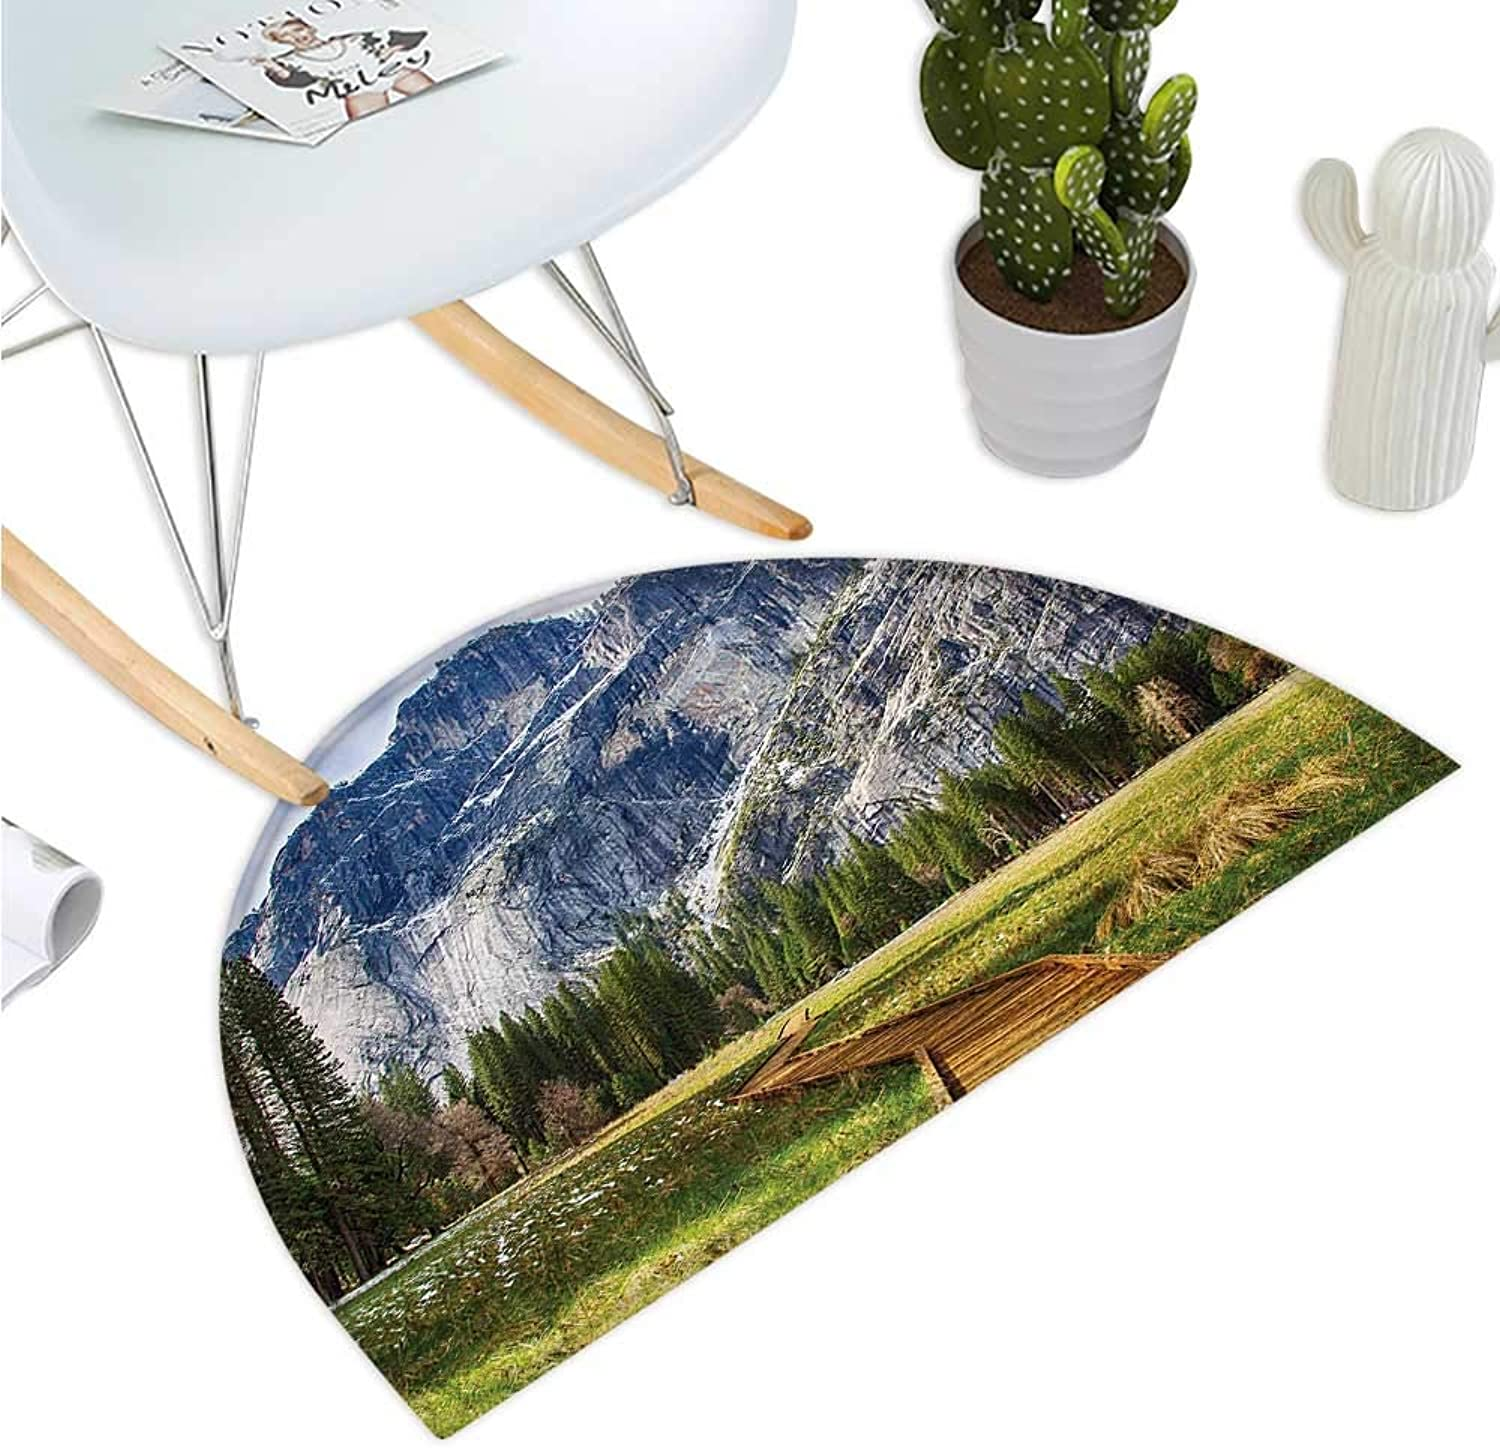 Yosemite Semicircular Cushion North Dome as Seen from The Valley with Wooden Walkway Yosemite National Park Entry Door Mat H 47.2  xD 70.8  Green Charcoal